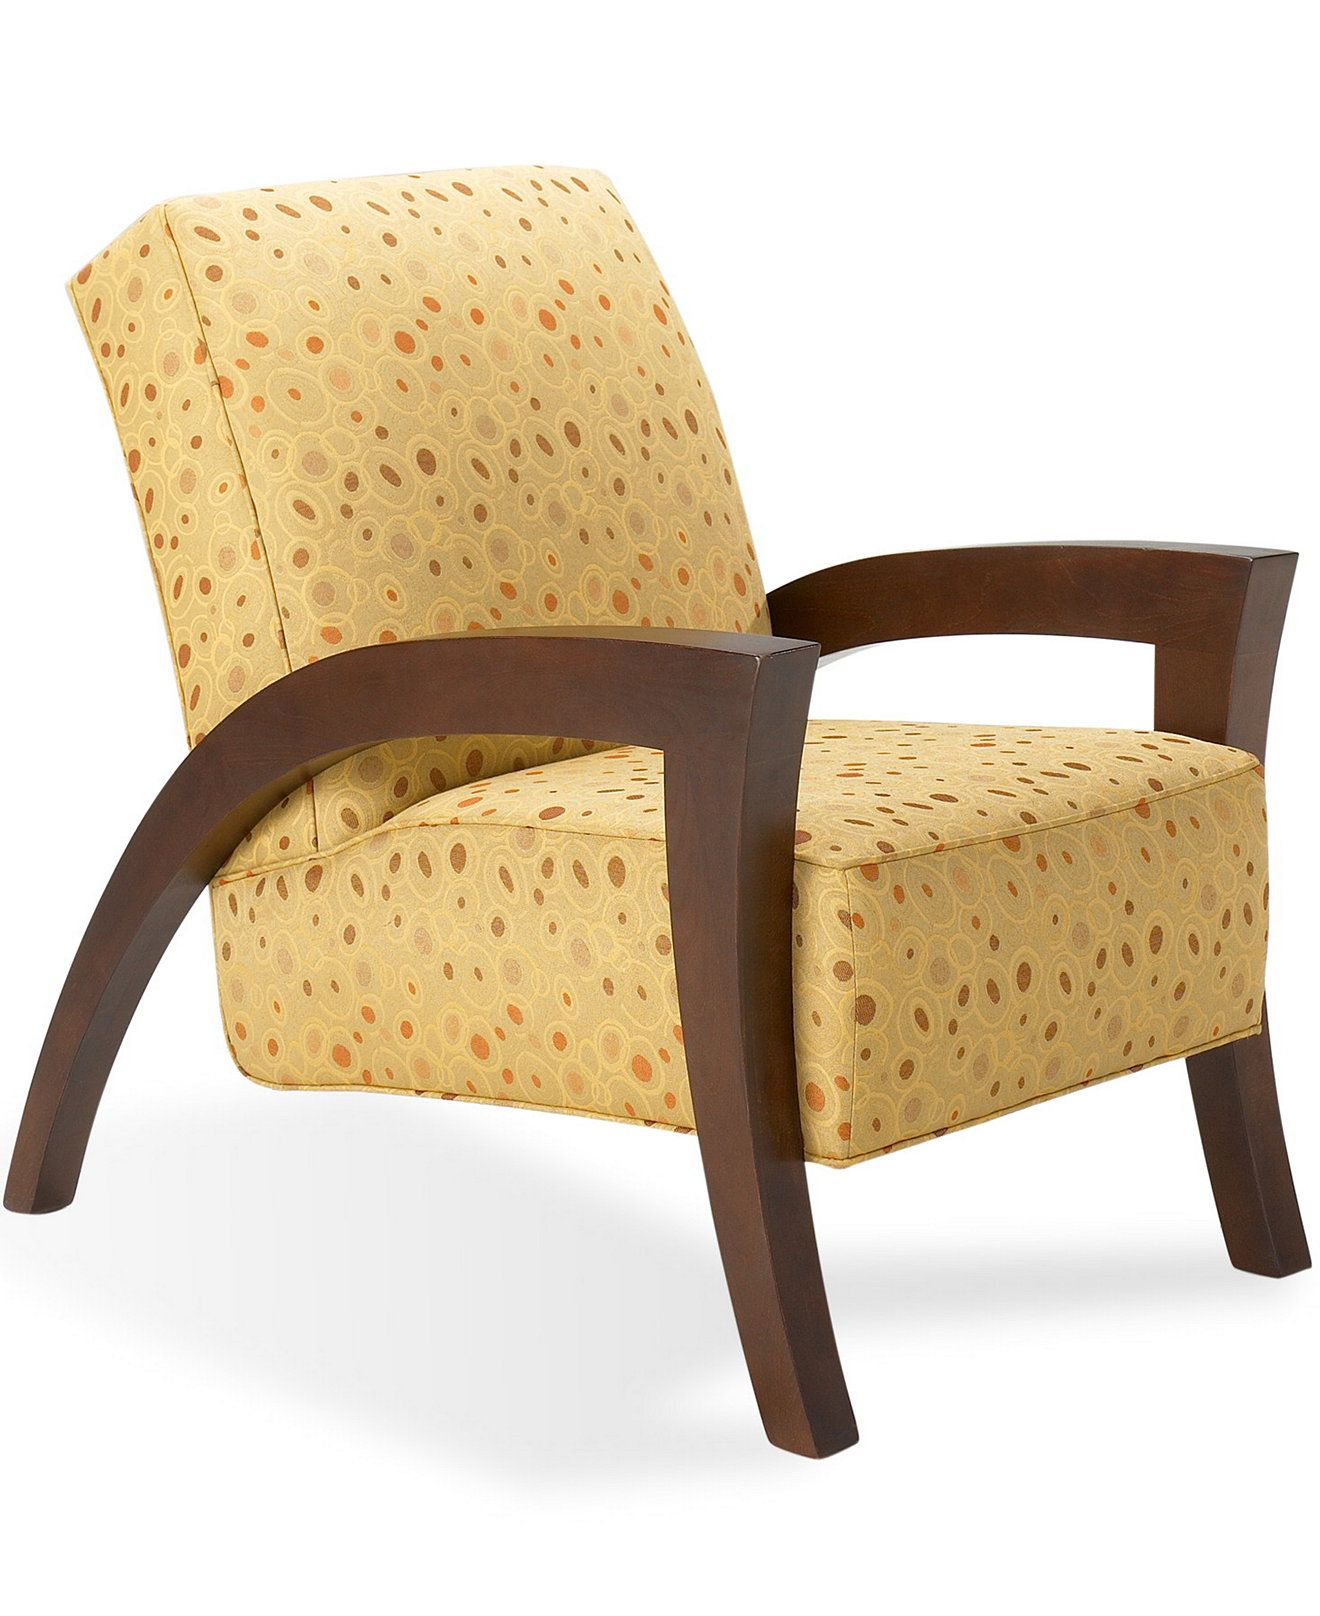 Macys Living Room Furniture Grasshopper Living Room Chair Accent Chair Chairs Recliners